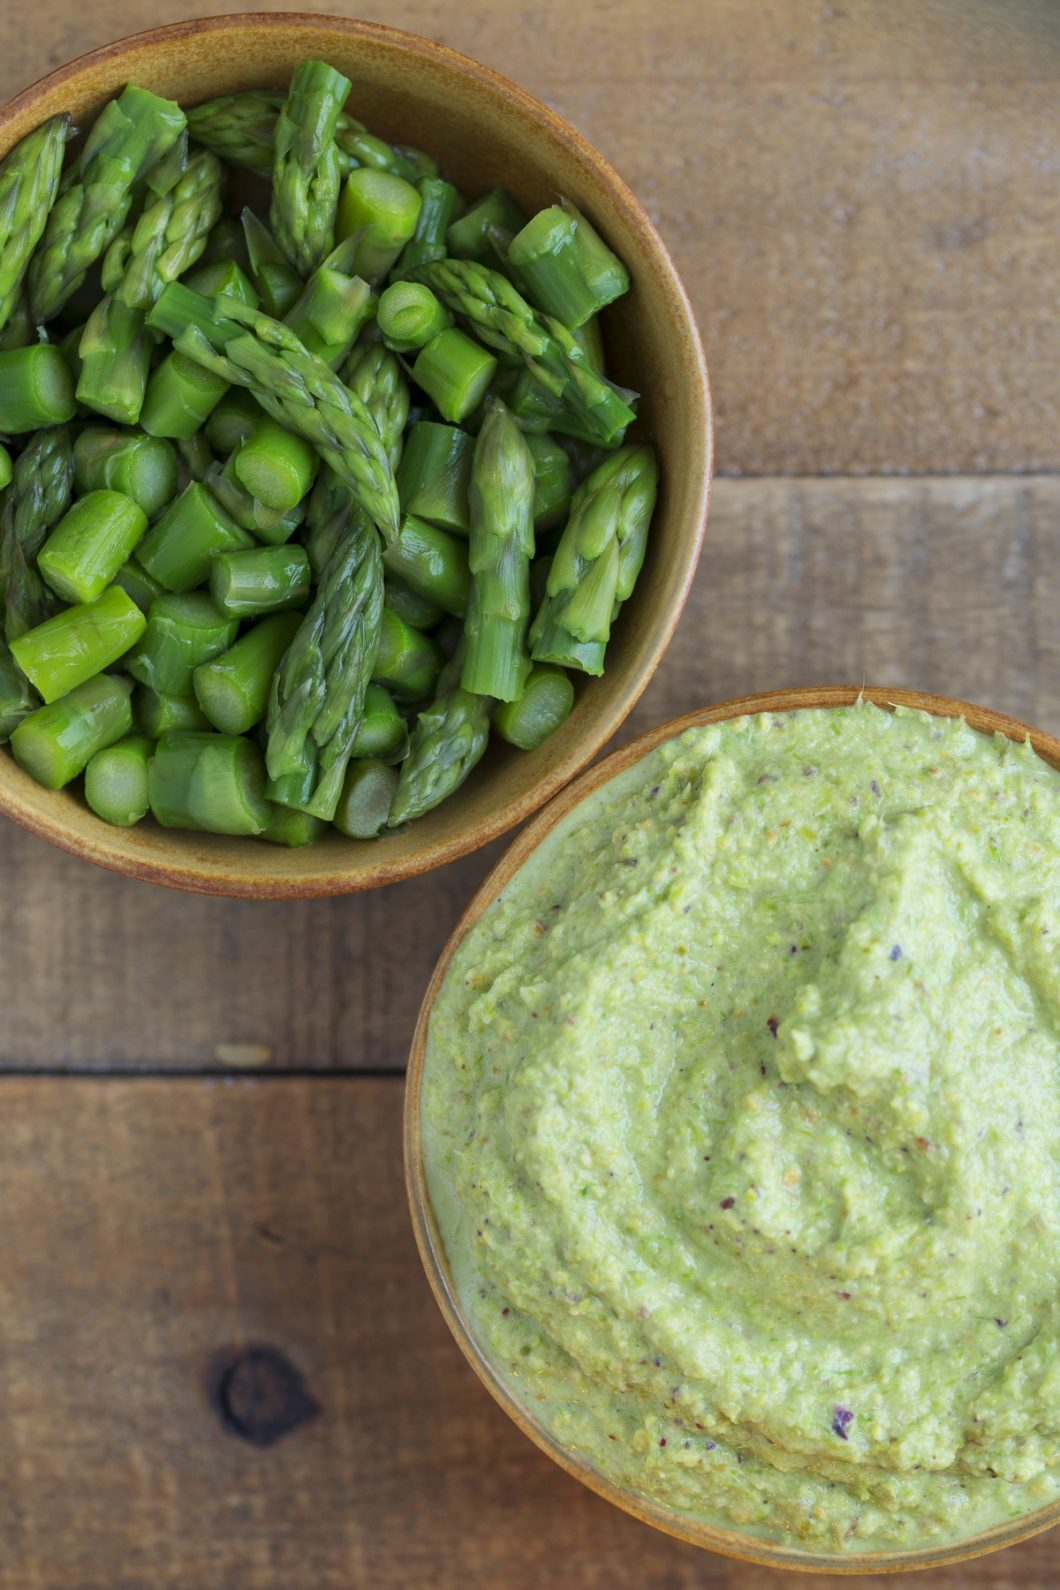 One bowl with puréed asparagus and one with chopped asparagus.